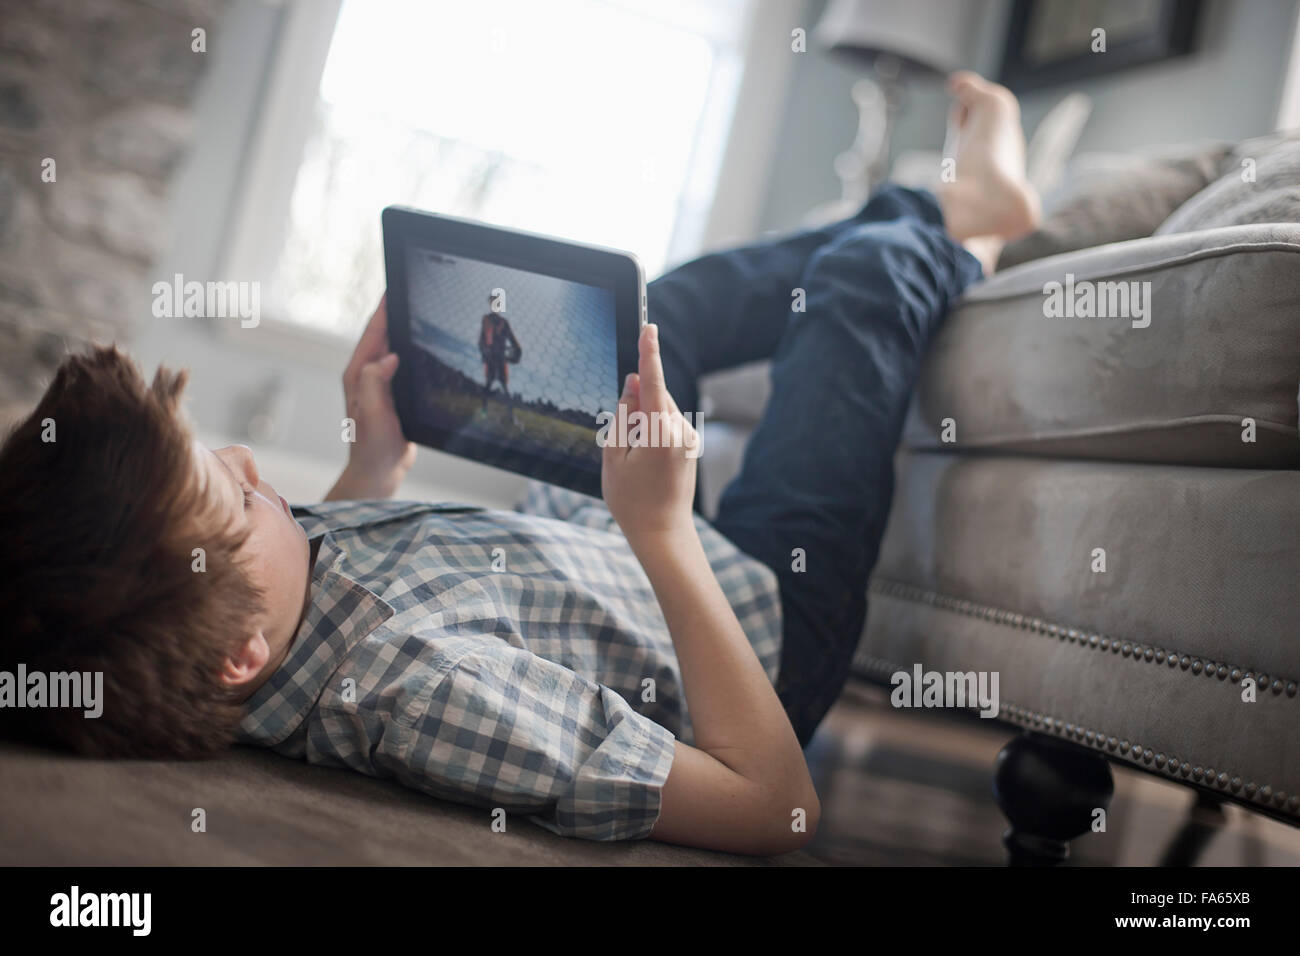 A boy lying on his front on the floor, looking at a digital tablet. - Stock Image